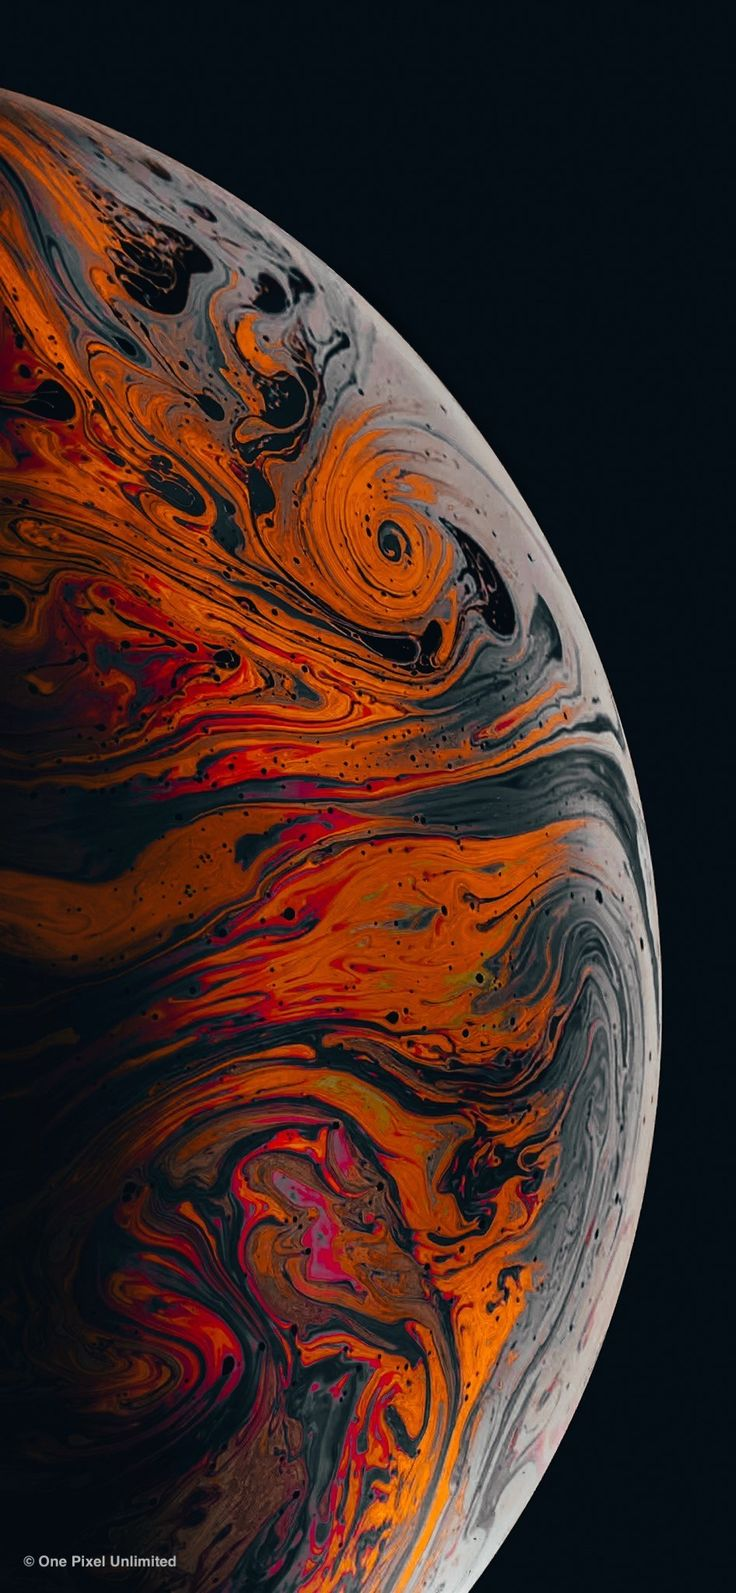 Wallpaper – iPhone/Android | ONE PIXEL UNLIMITED